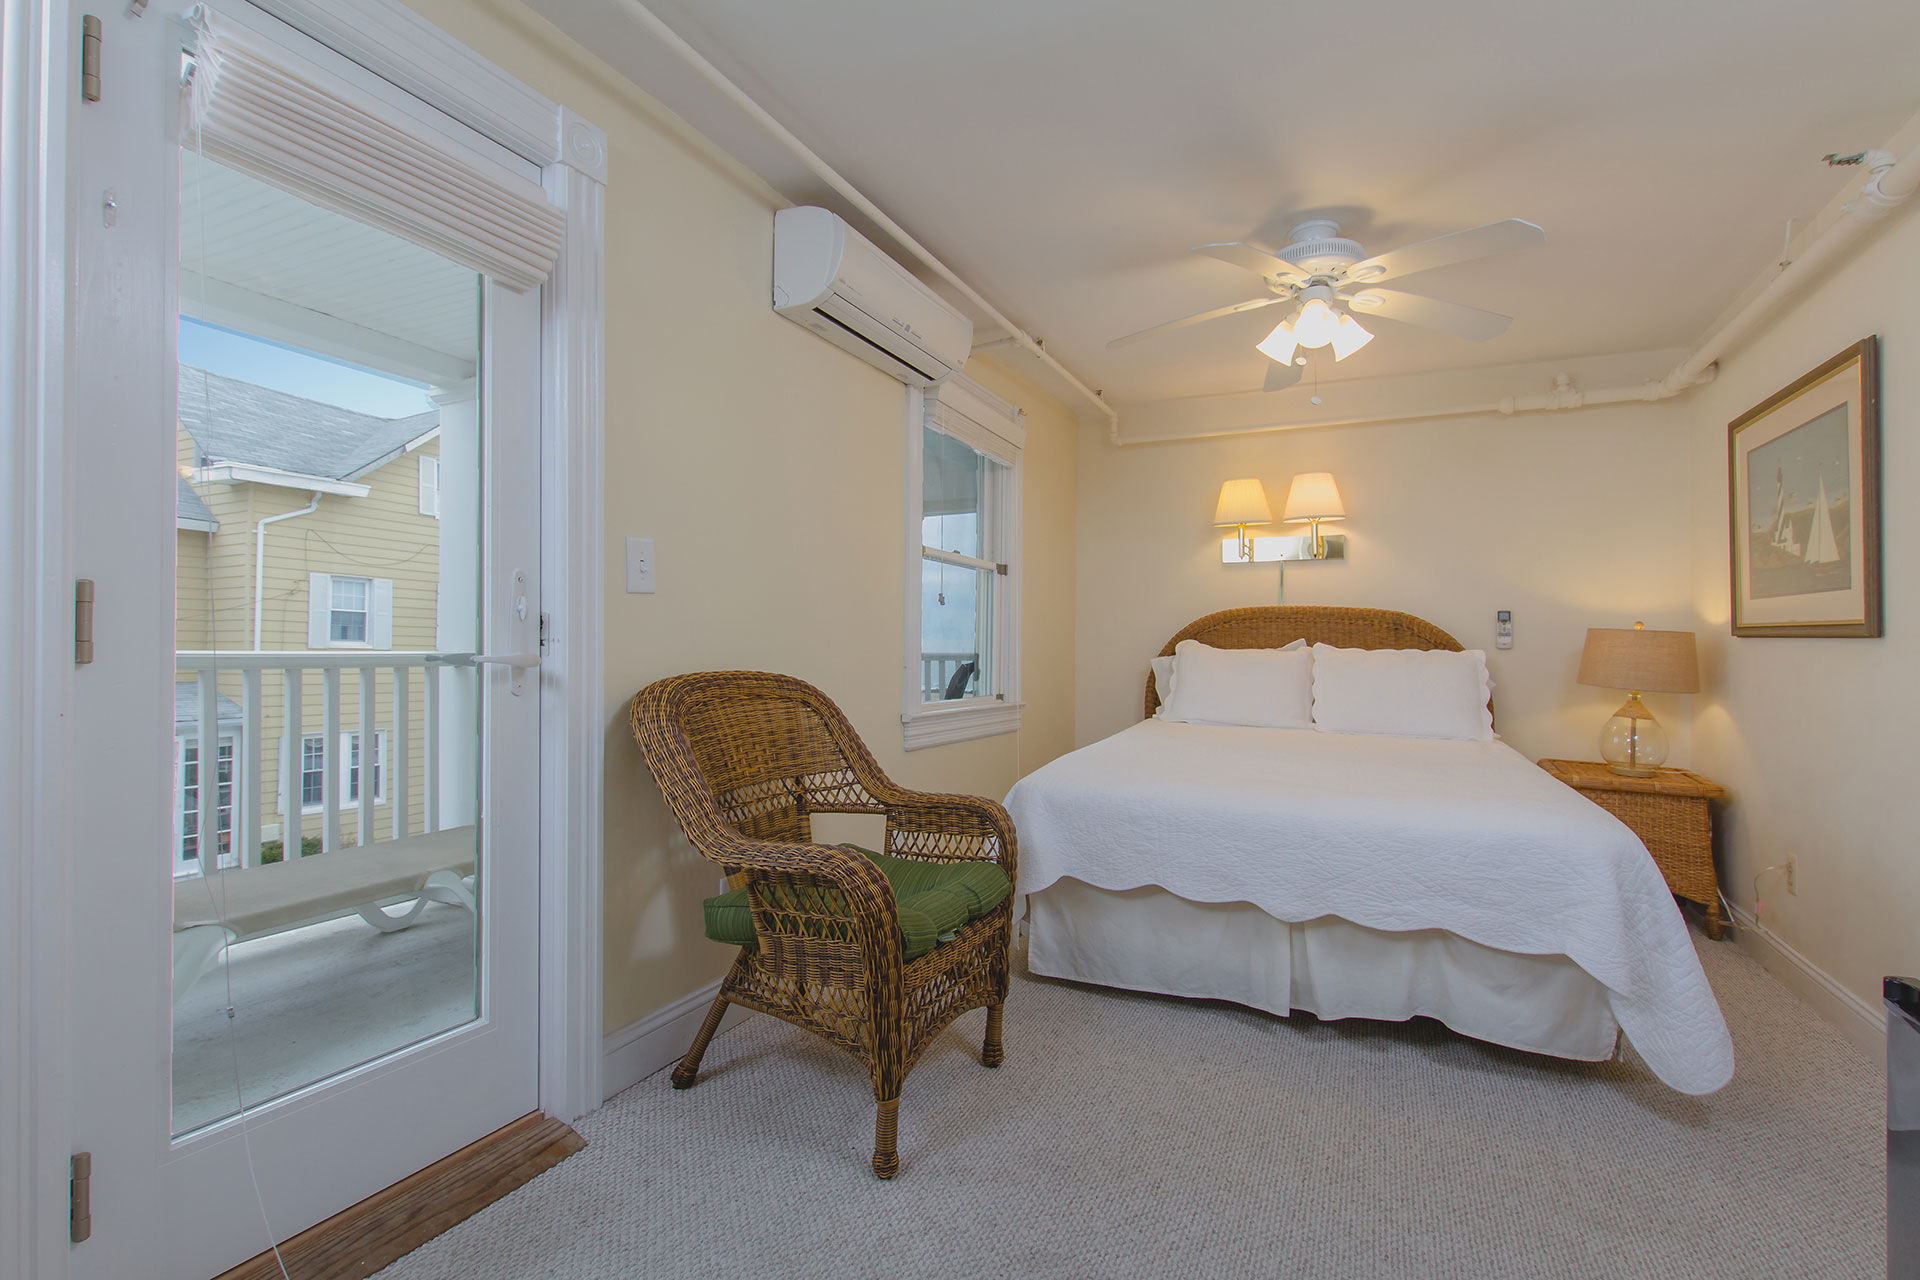 Shawmont Hotel Rooms